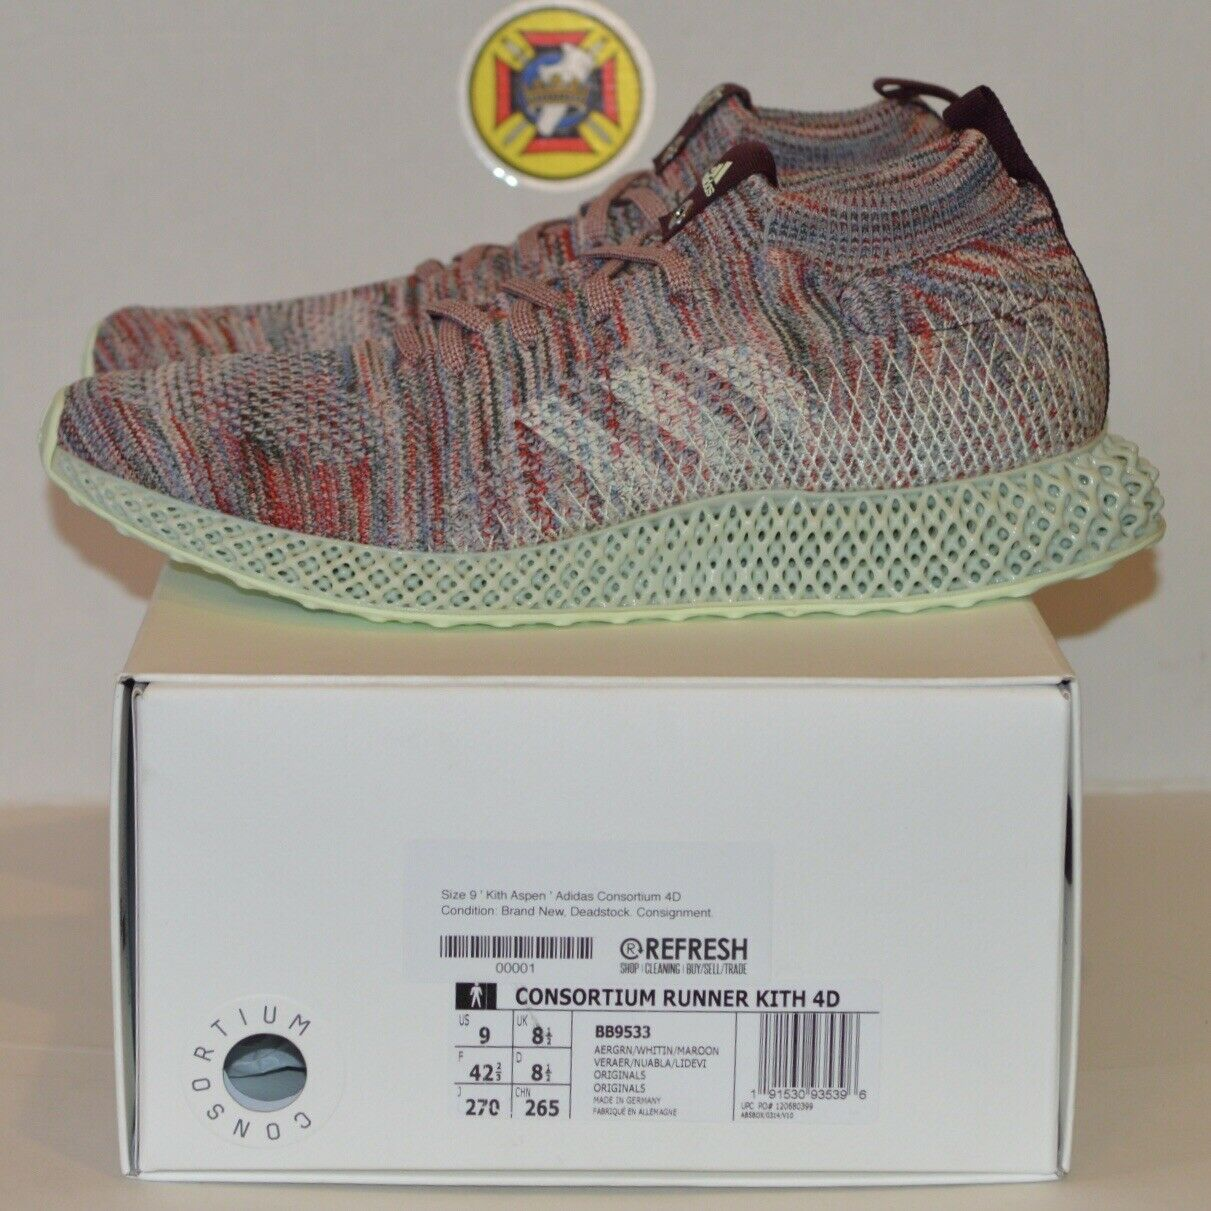 Adidas Consortium Runner Kith Aspen 4D Future Print Size 9 NEW DS 100% Authentic